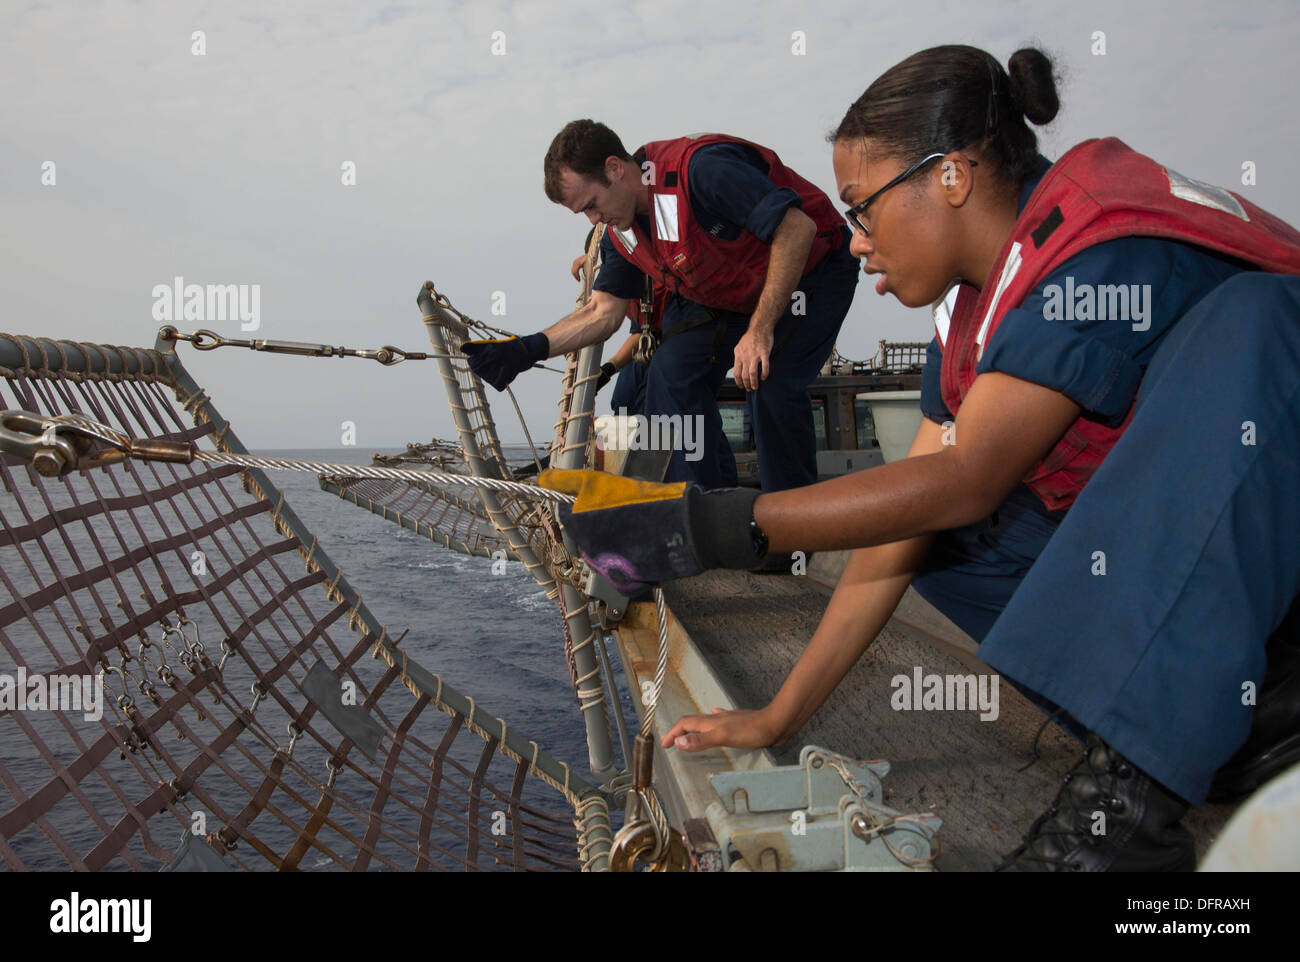 Ship's Serviceman Seaman Marcia Puello, right, and Hull Technician 2nd Class Sean Roberts lower safety nets prior to flight operations aboard the guided-missile destroyer USS Mason (DDG 87). Mason is deployed in support of maritime security operations and - Stock Image